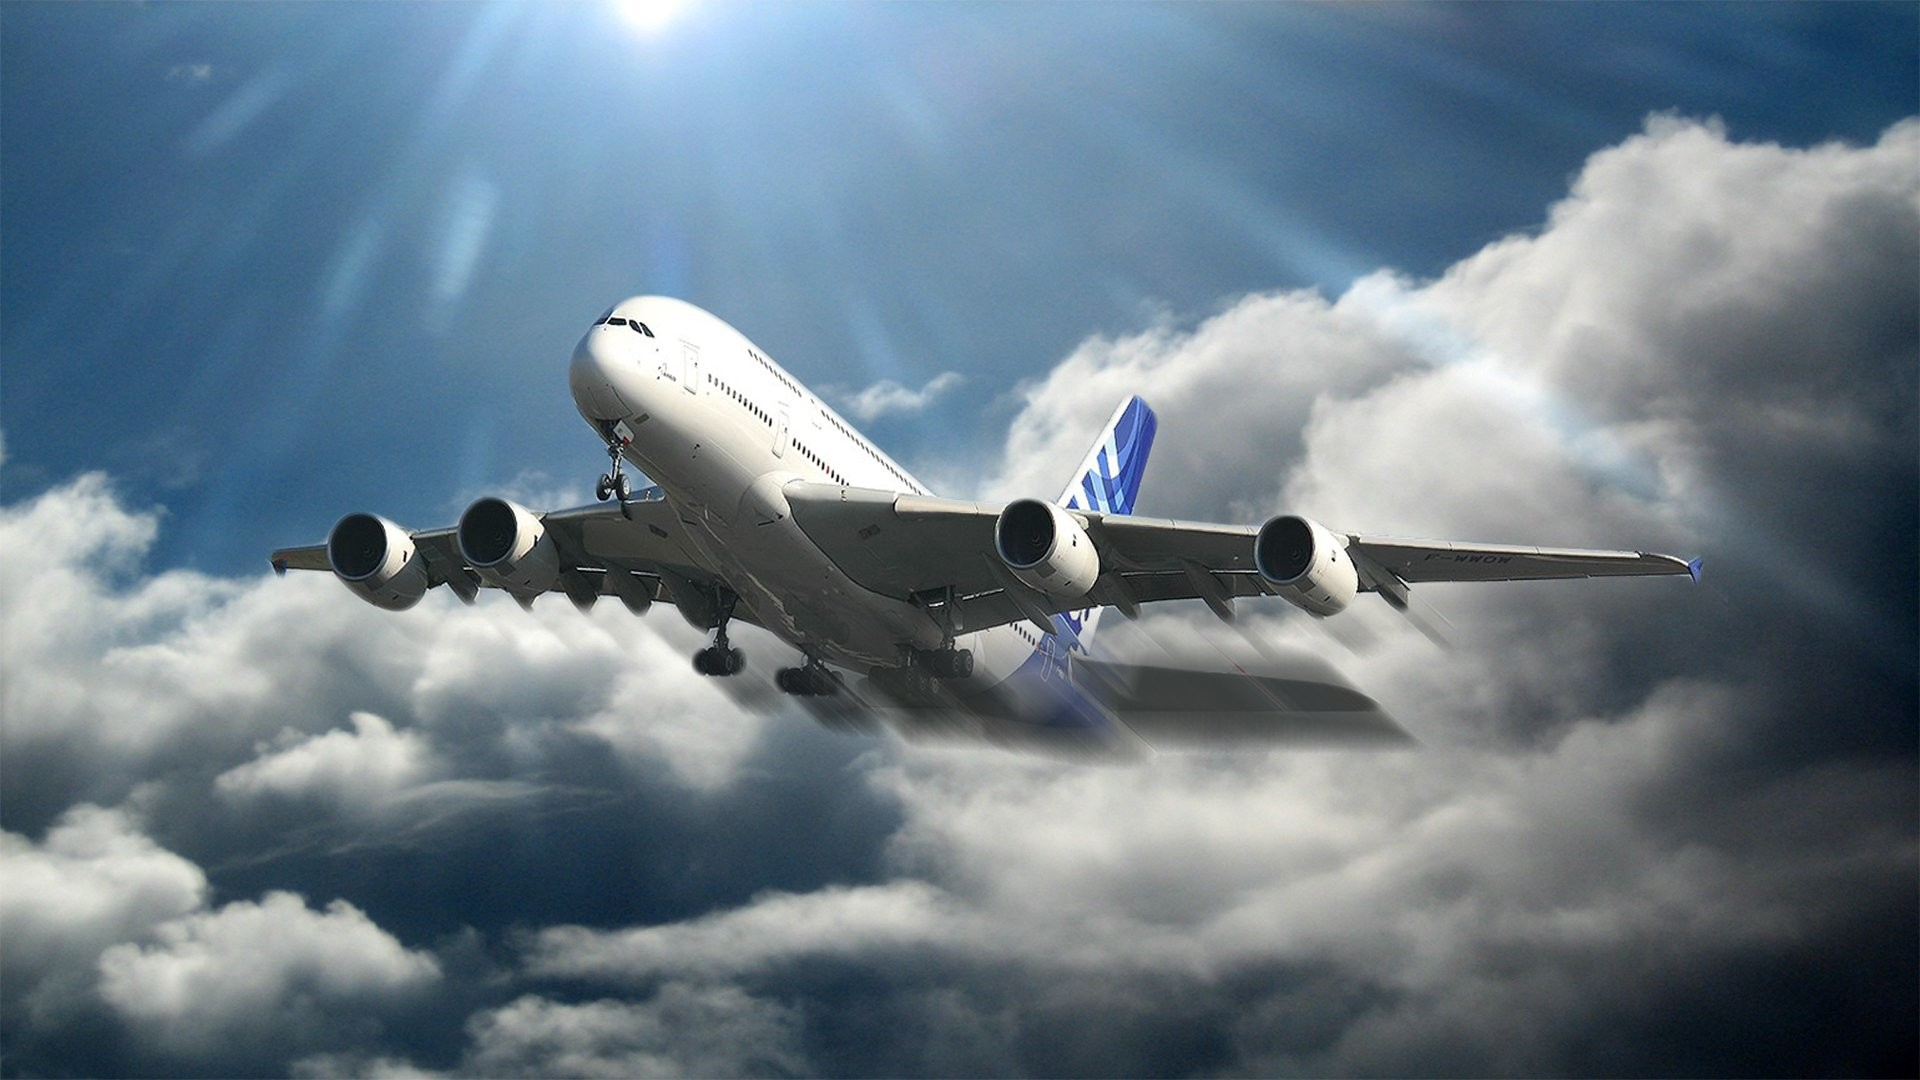 1920x1080 AIRBUS A380 airliner plane airplane transport (73) wallpaper |  |  357394 | WallpaperUP